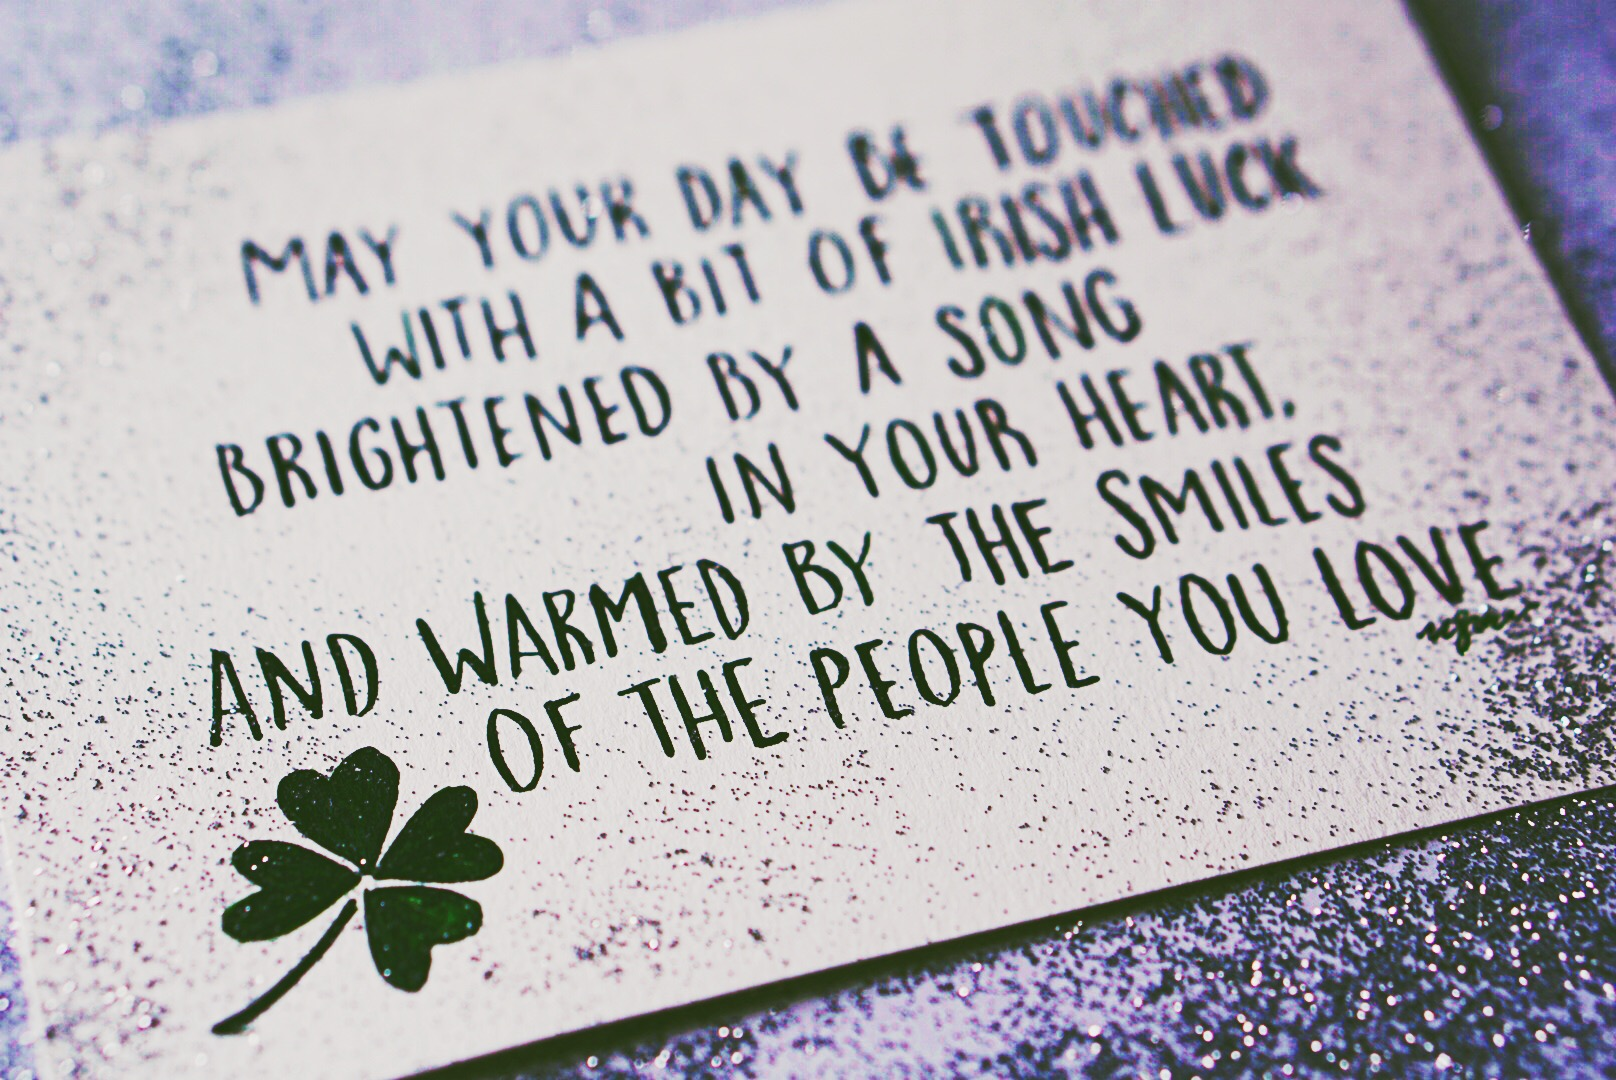 May your day be touched with a bit of Irish luck, brightened by a song in your heart, and warmed by the smiles of the people you love. —Irish Proverb